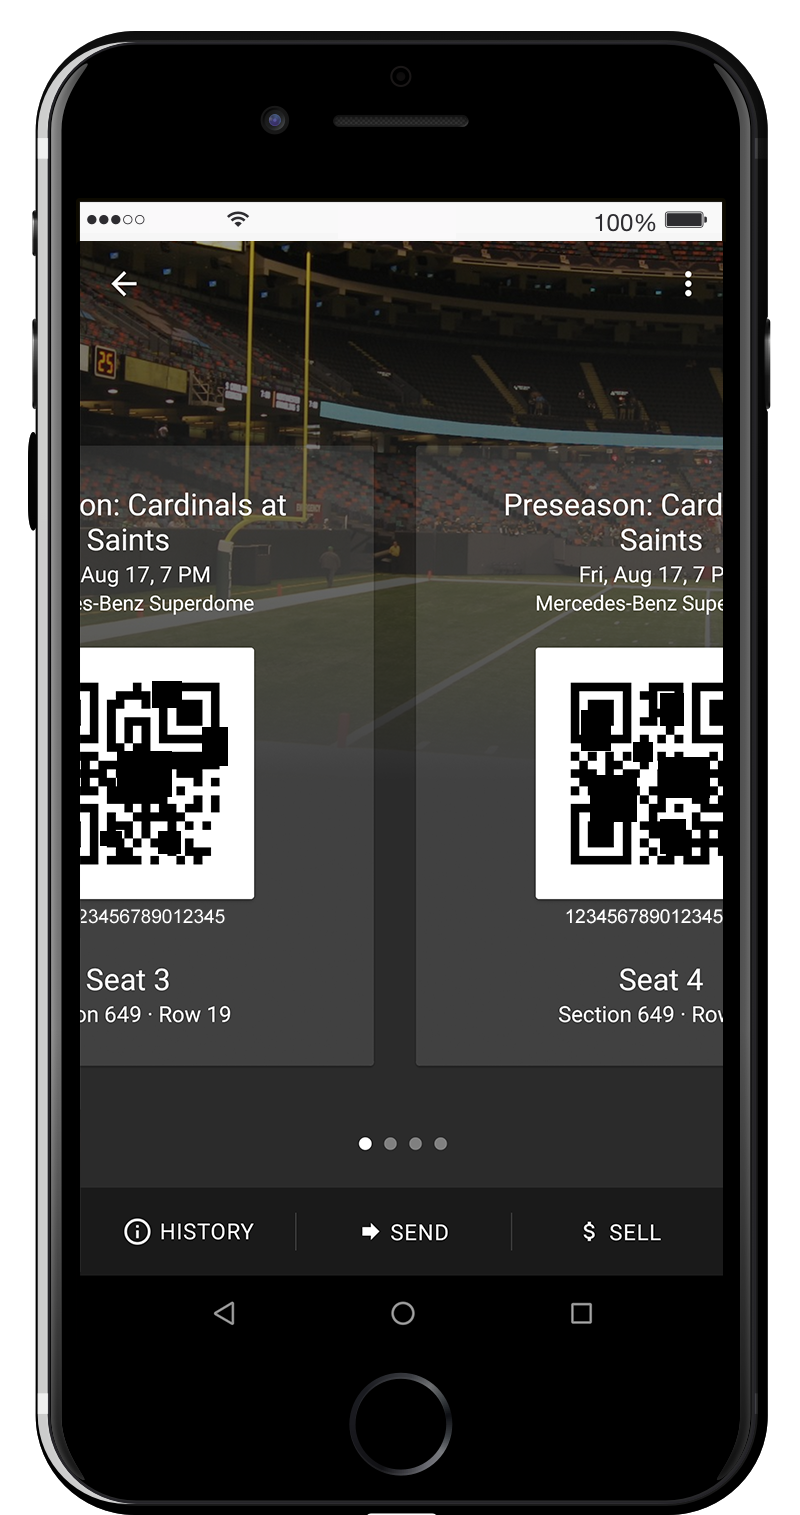 Each event will contain all available tickets for that event. Swipe right for each ticket and present to scan upon entry.